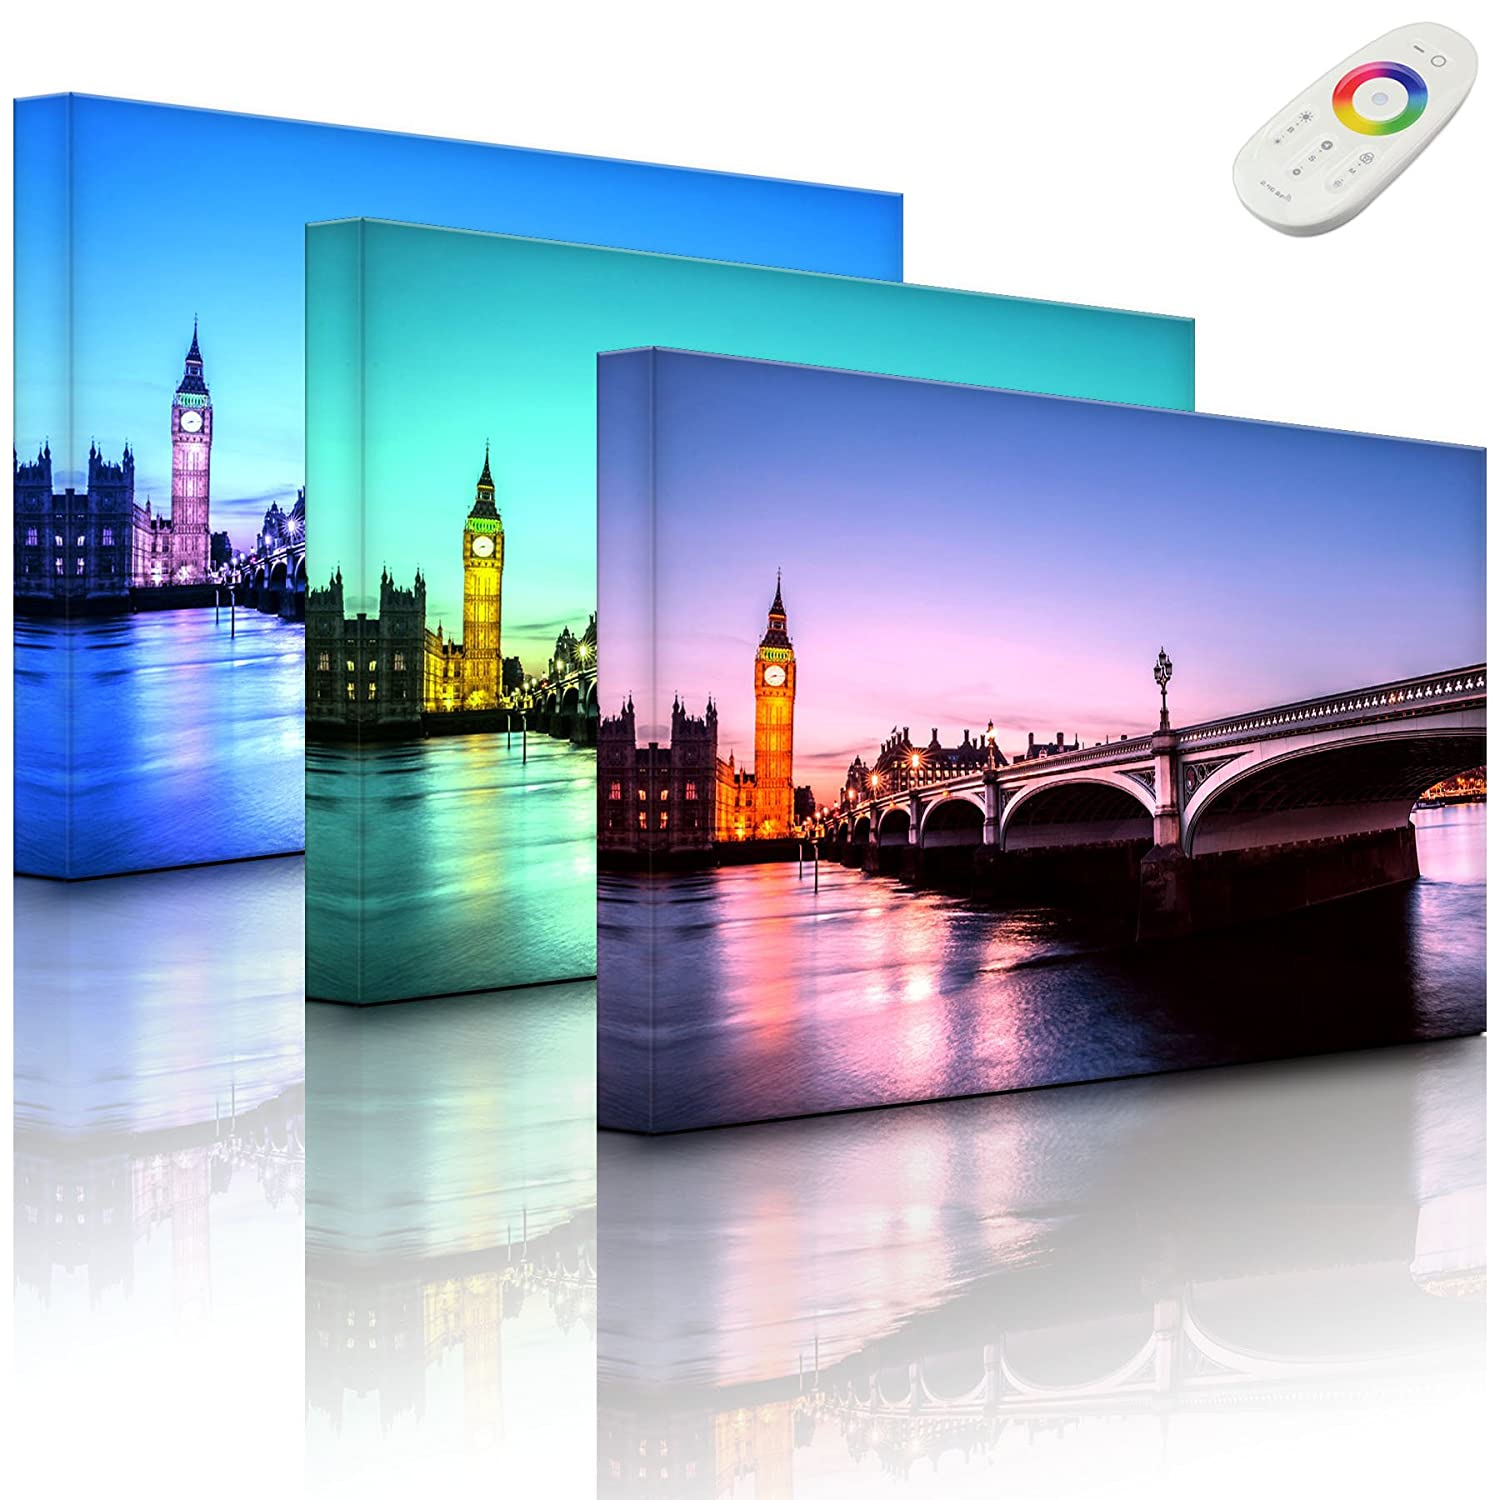 lightbox-multicolor.com Wall picture with LED - Westminster Bridge and Big Ben at night - 60 x 40 cm - front lighted Rossteutscher GbR